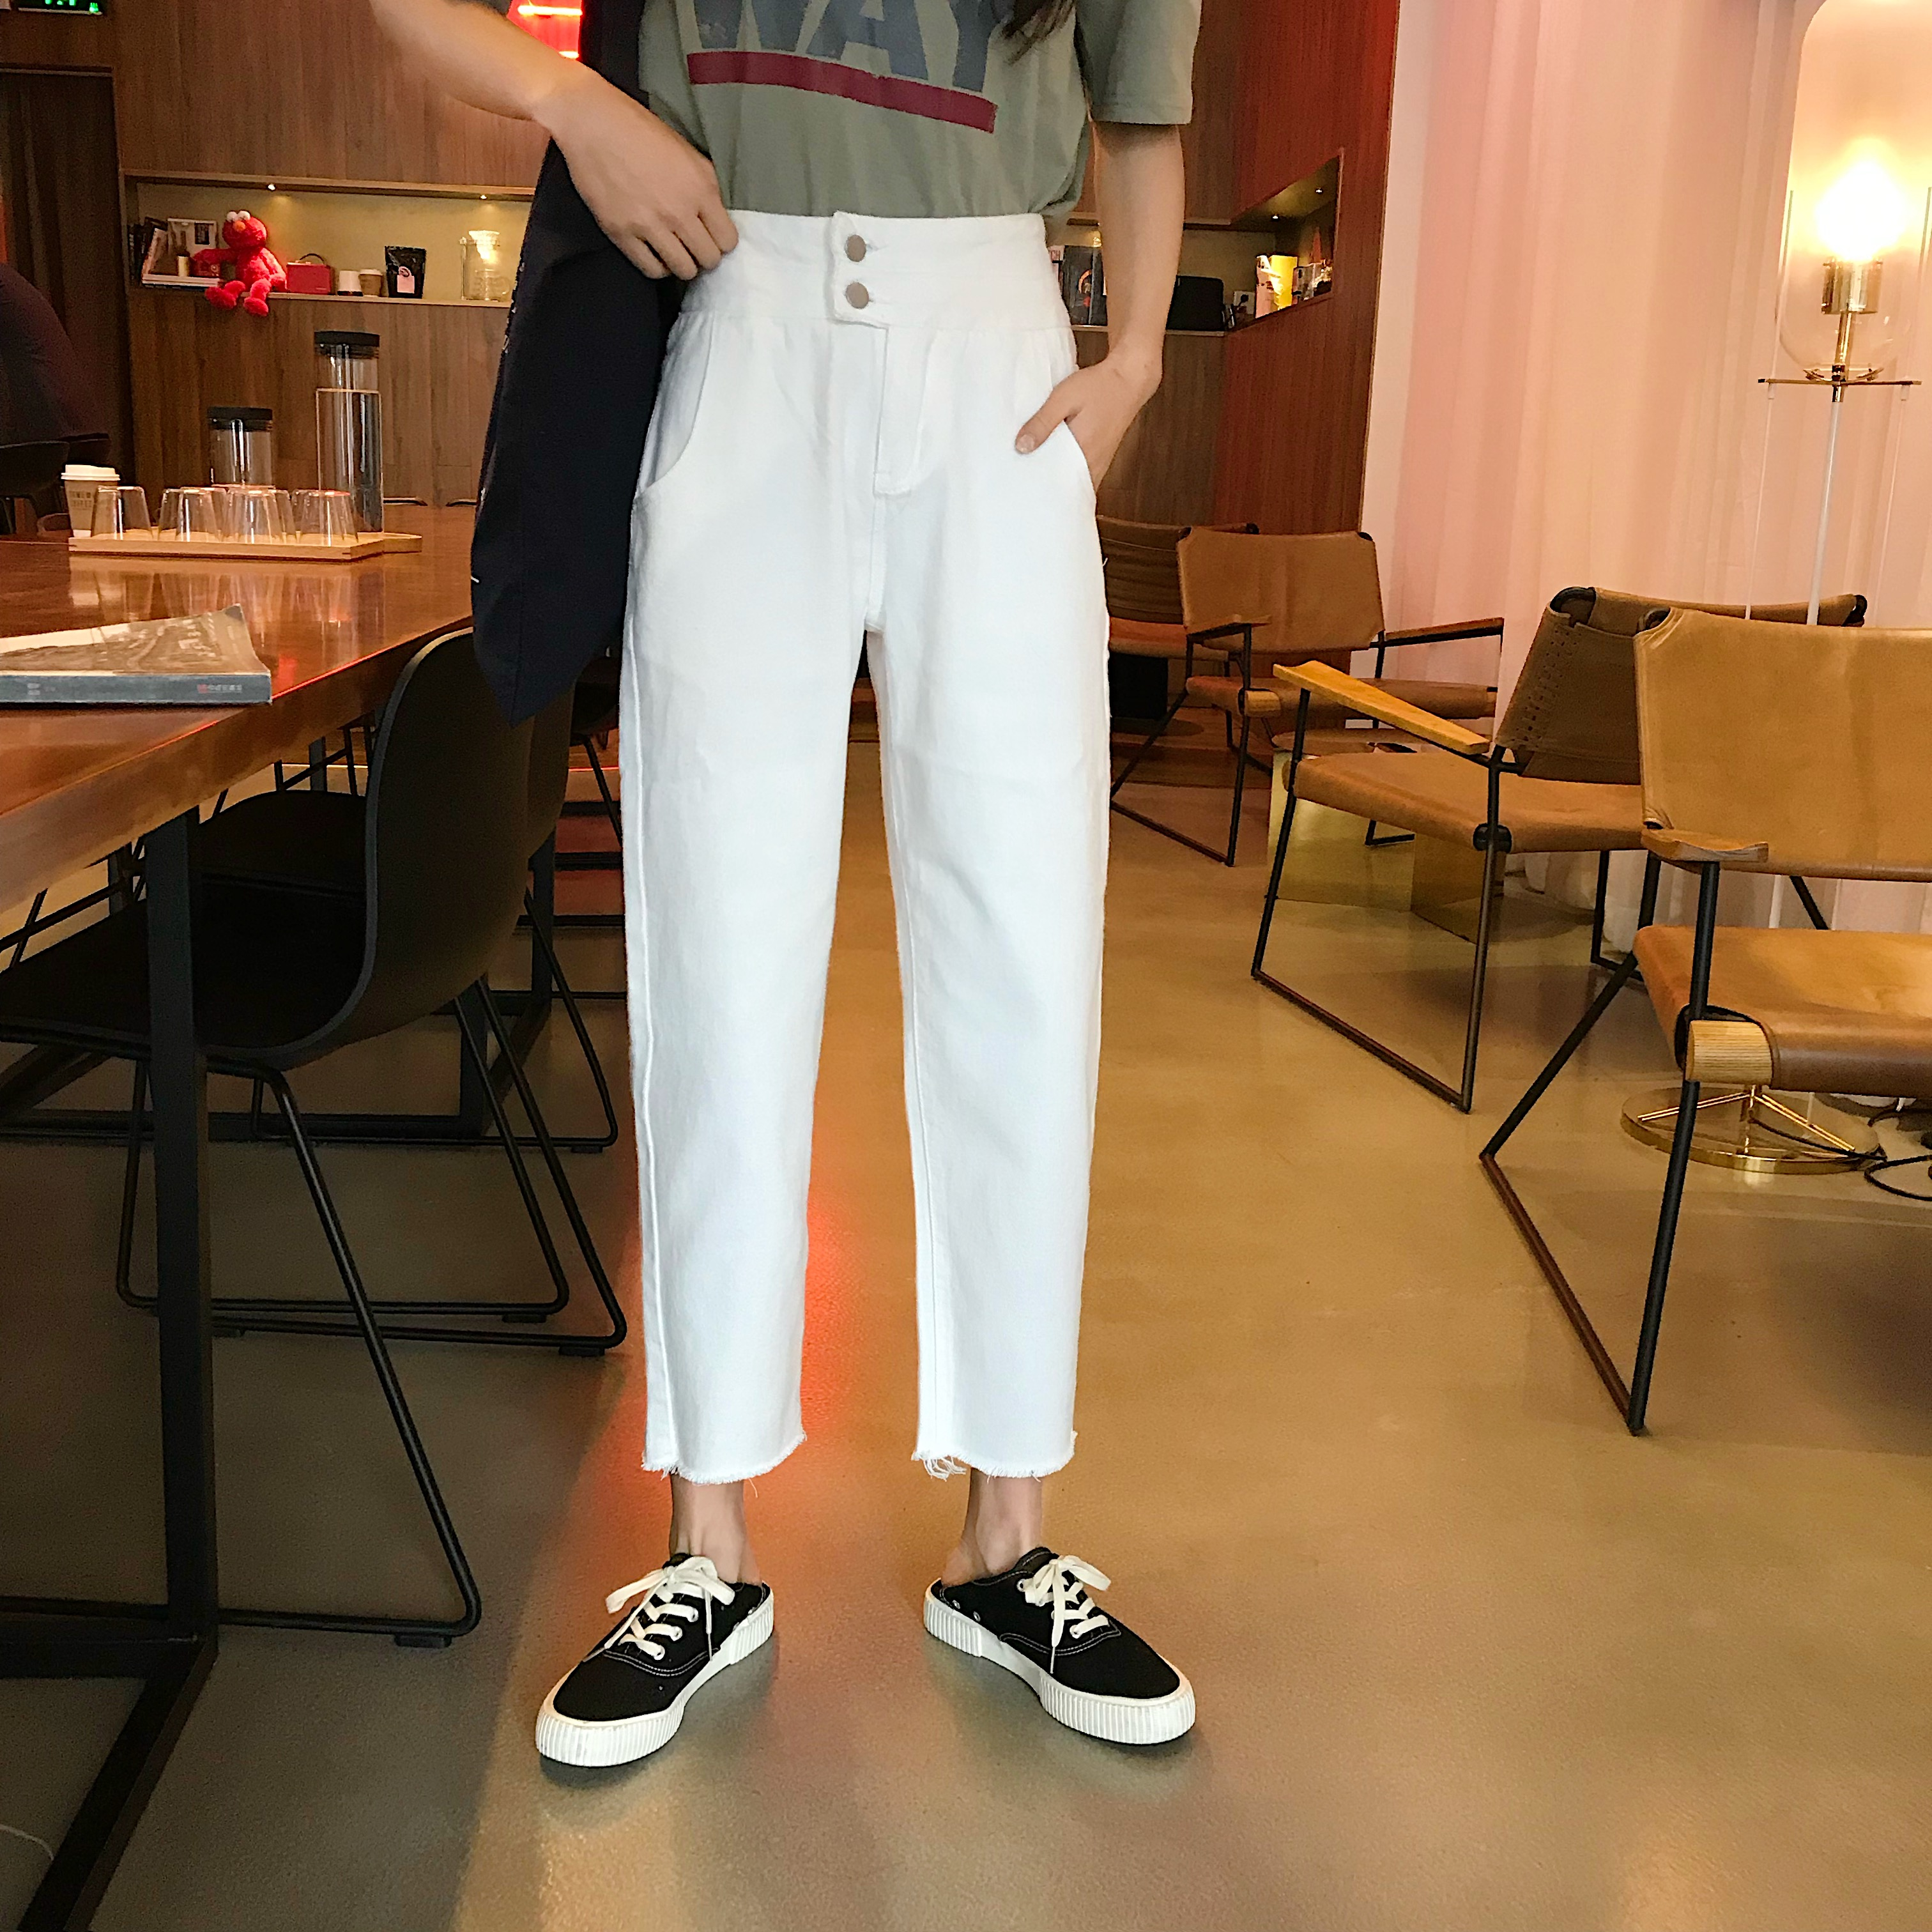 Chic Retro High Waist Boyfriend Jeans For Women Casual Long Loose Straight Jeans Washed Double Buckle Button Push Up Denim Jeans